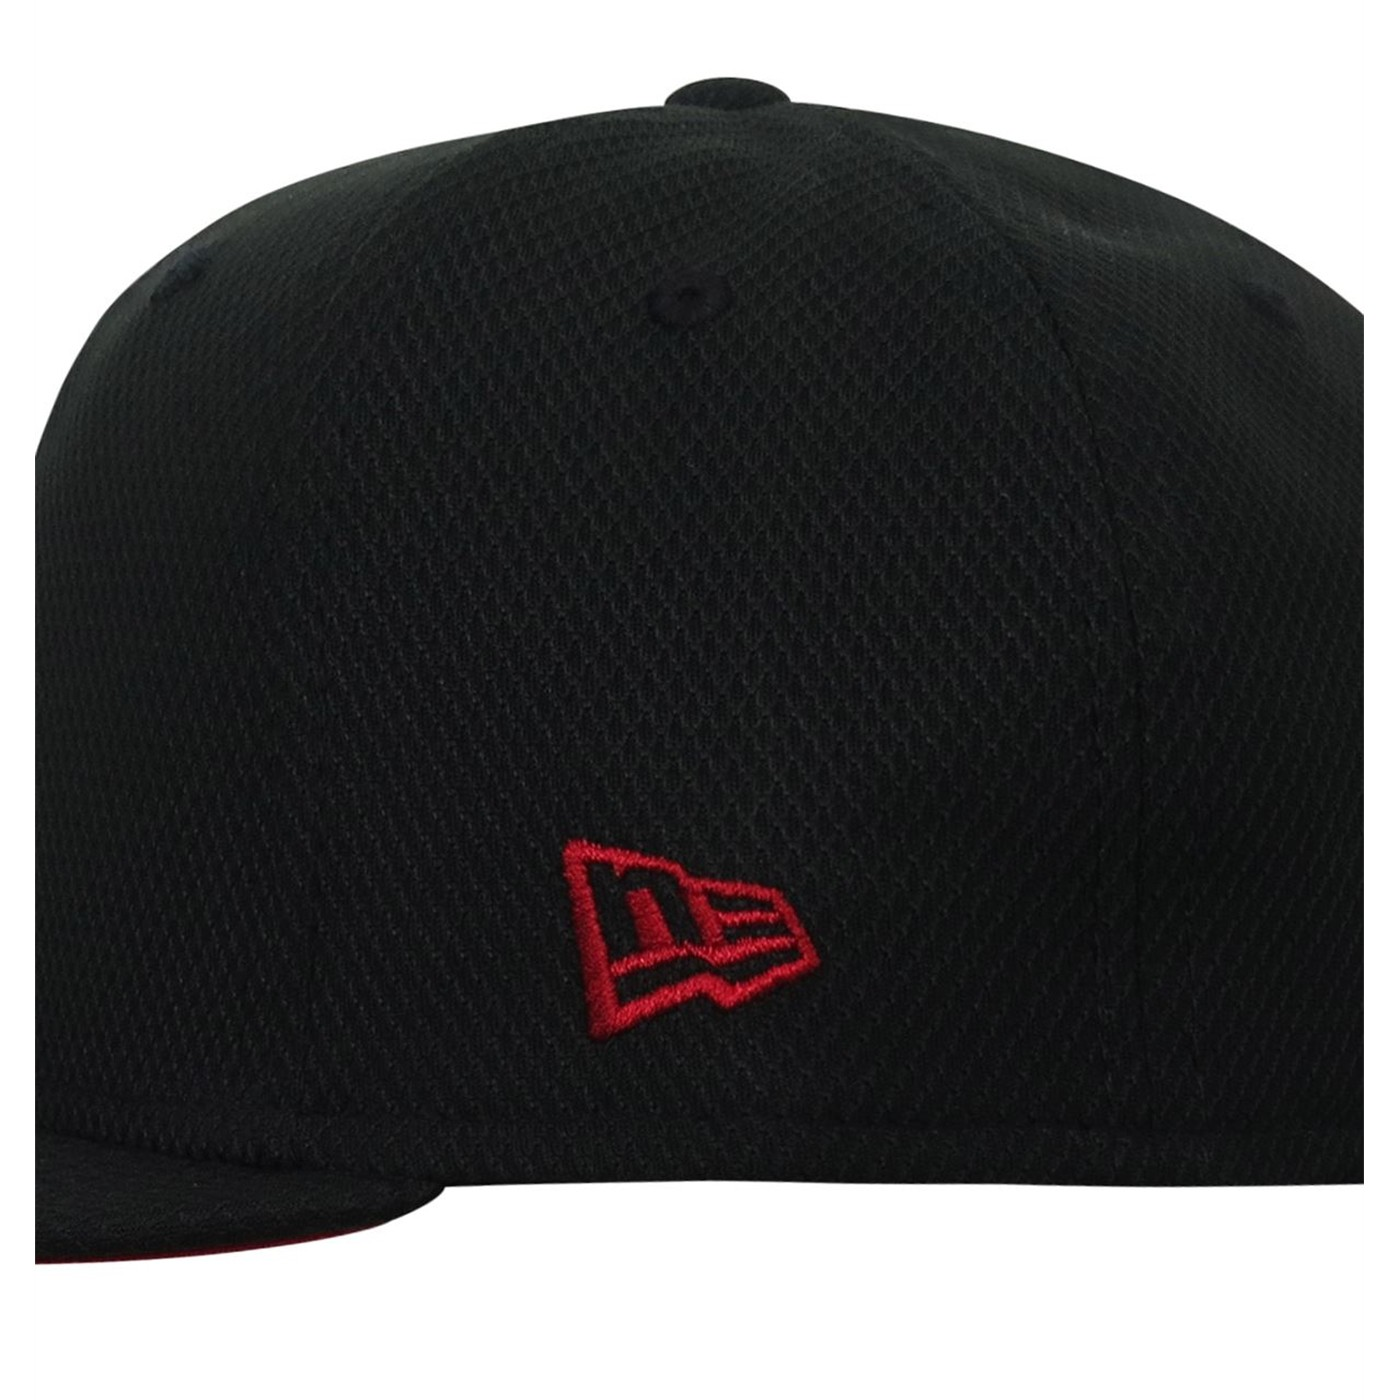 Deadpool Symbol Black 59Fifty Fitted Hat